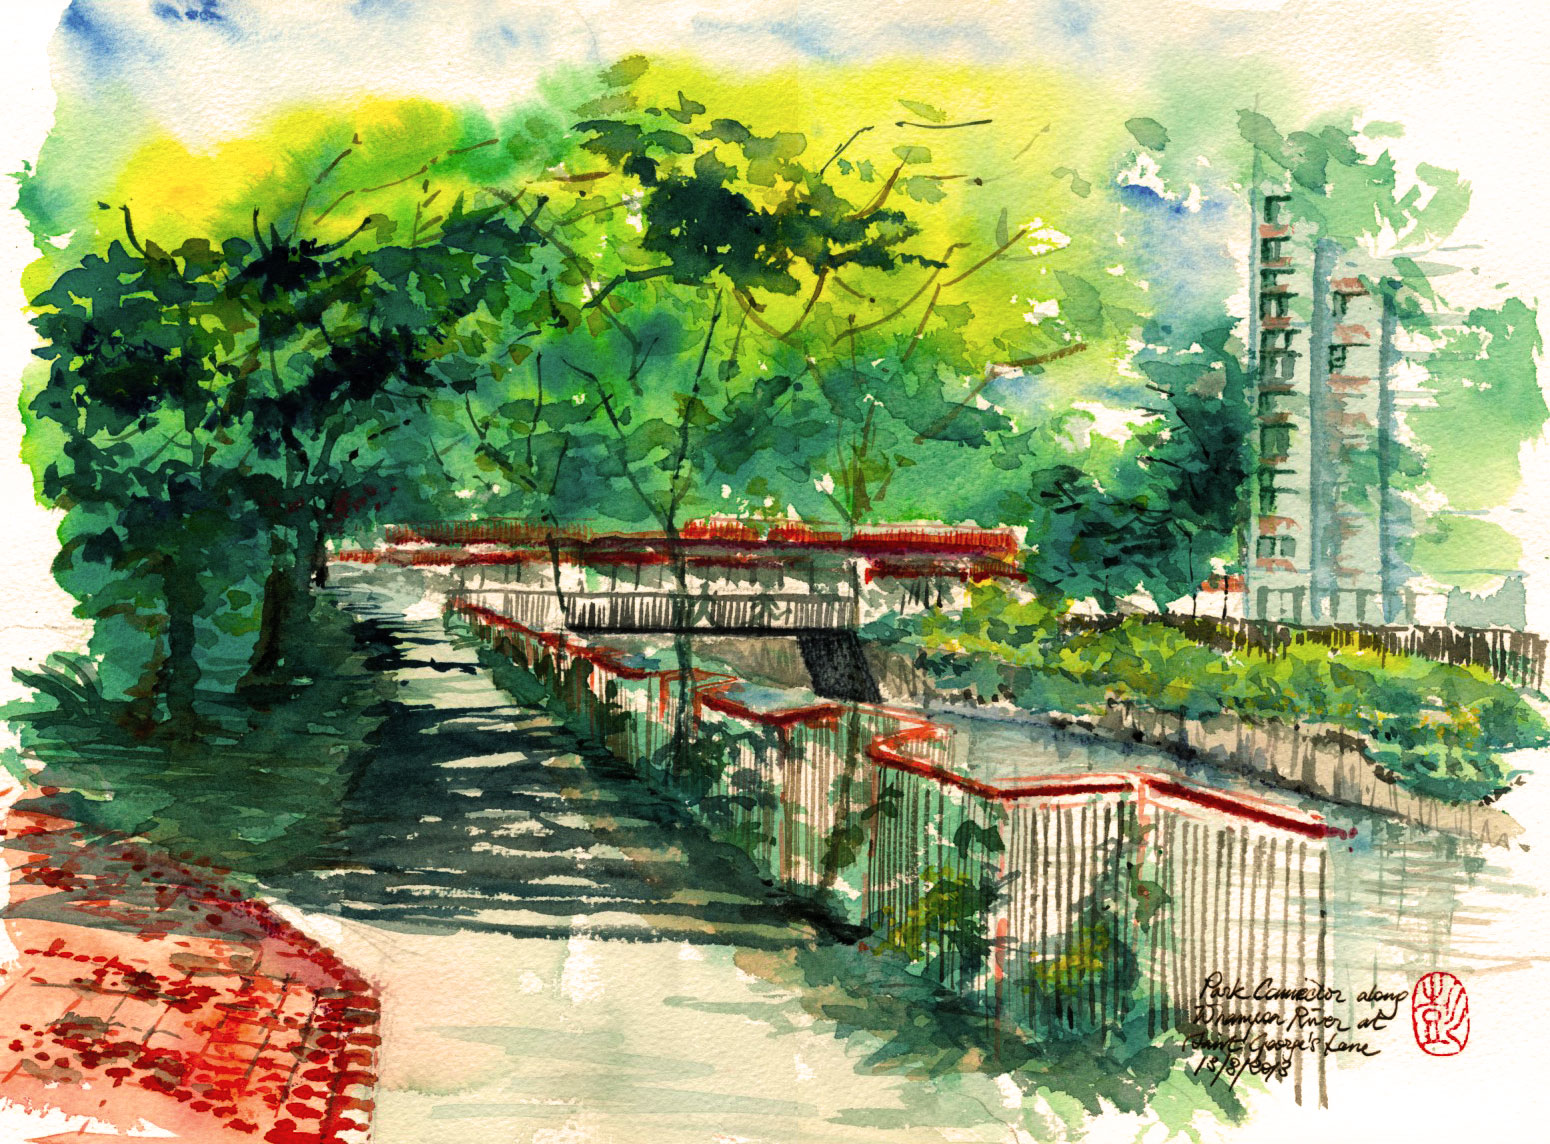 Whampoa River Case Along Whampoa River at st